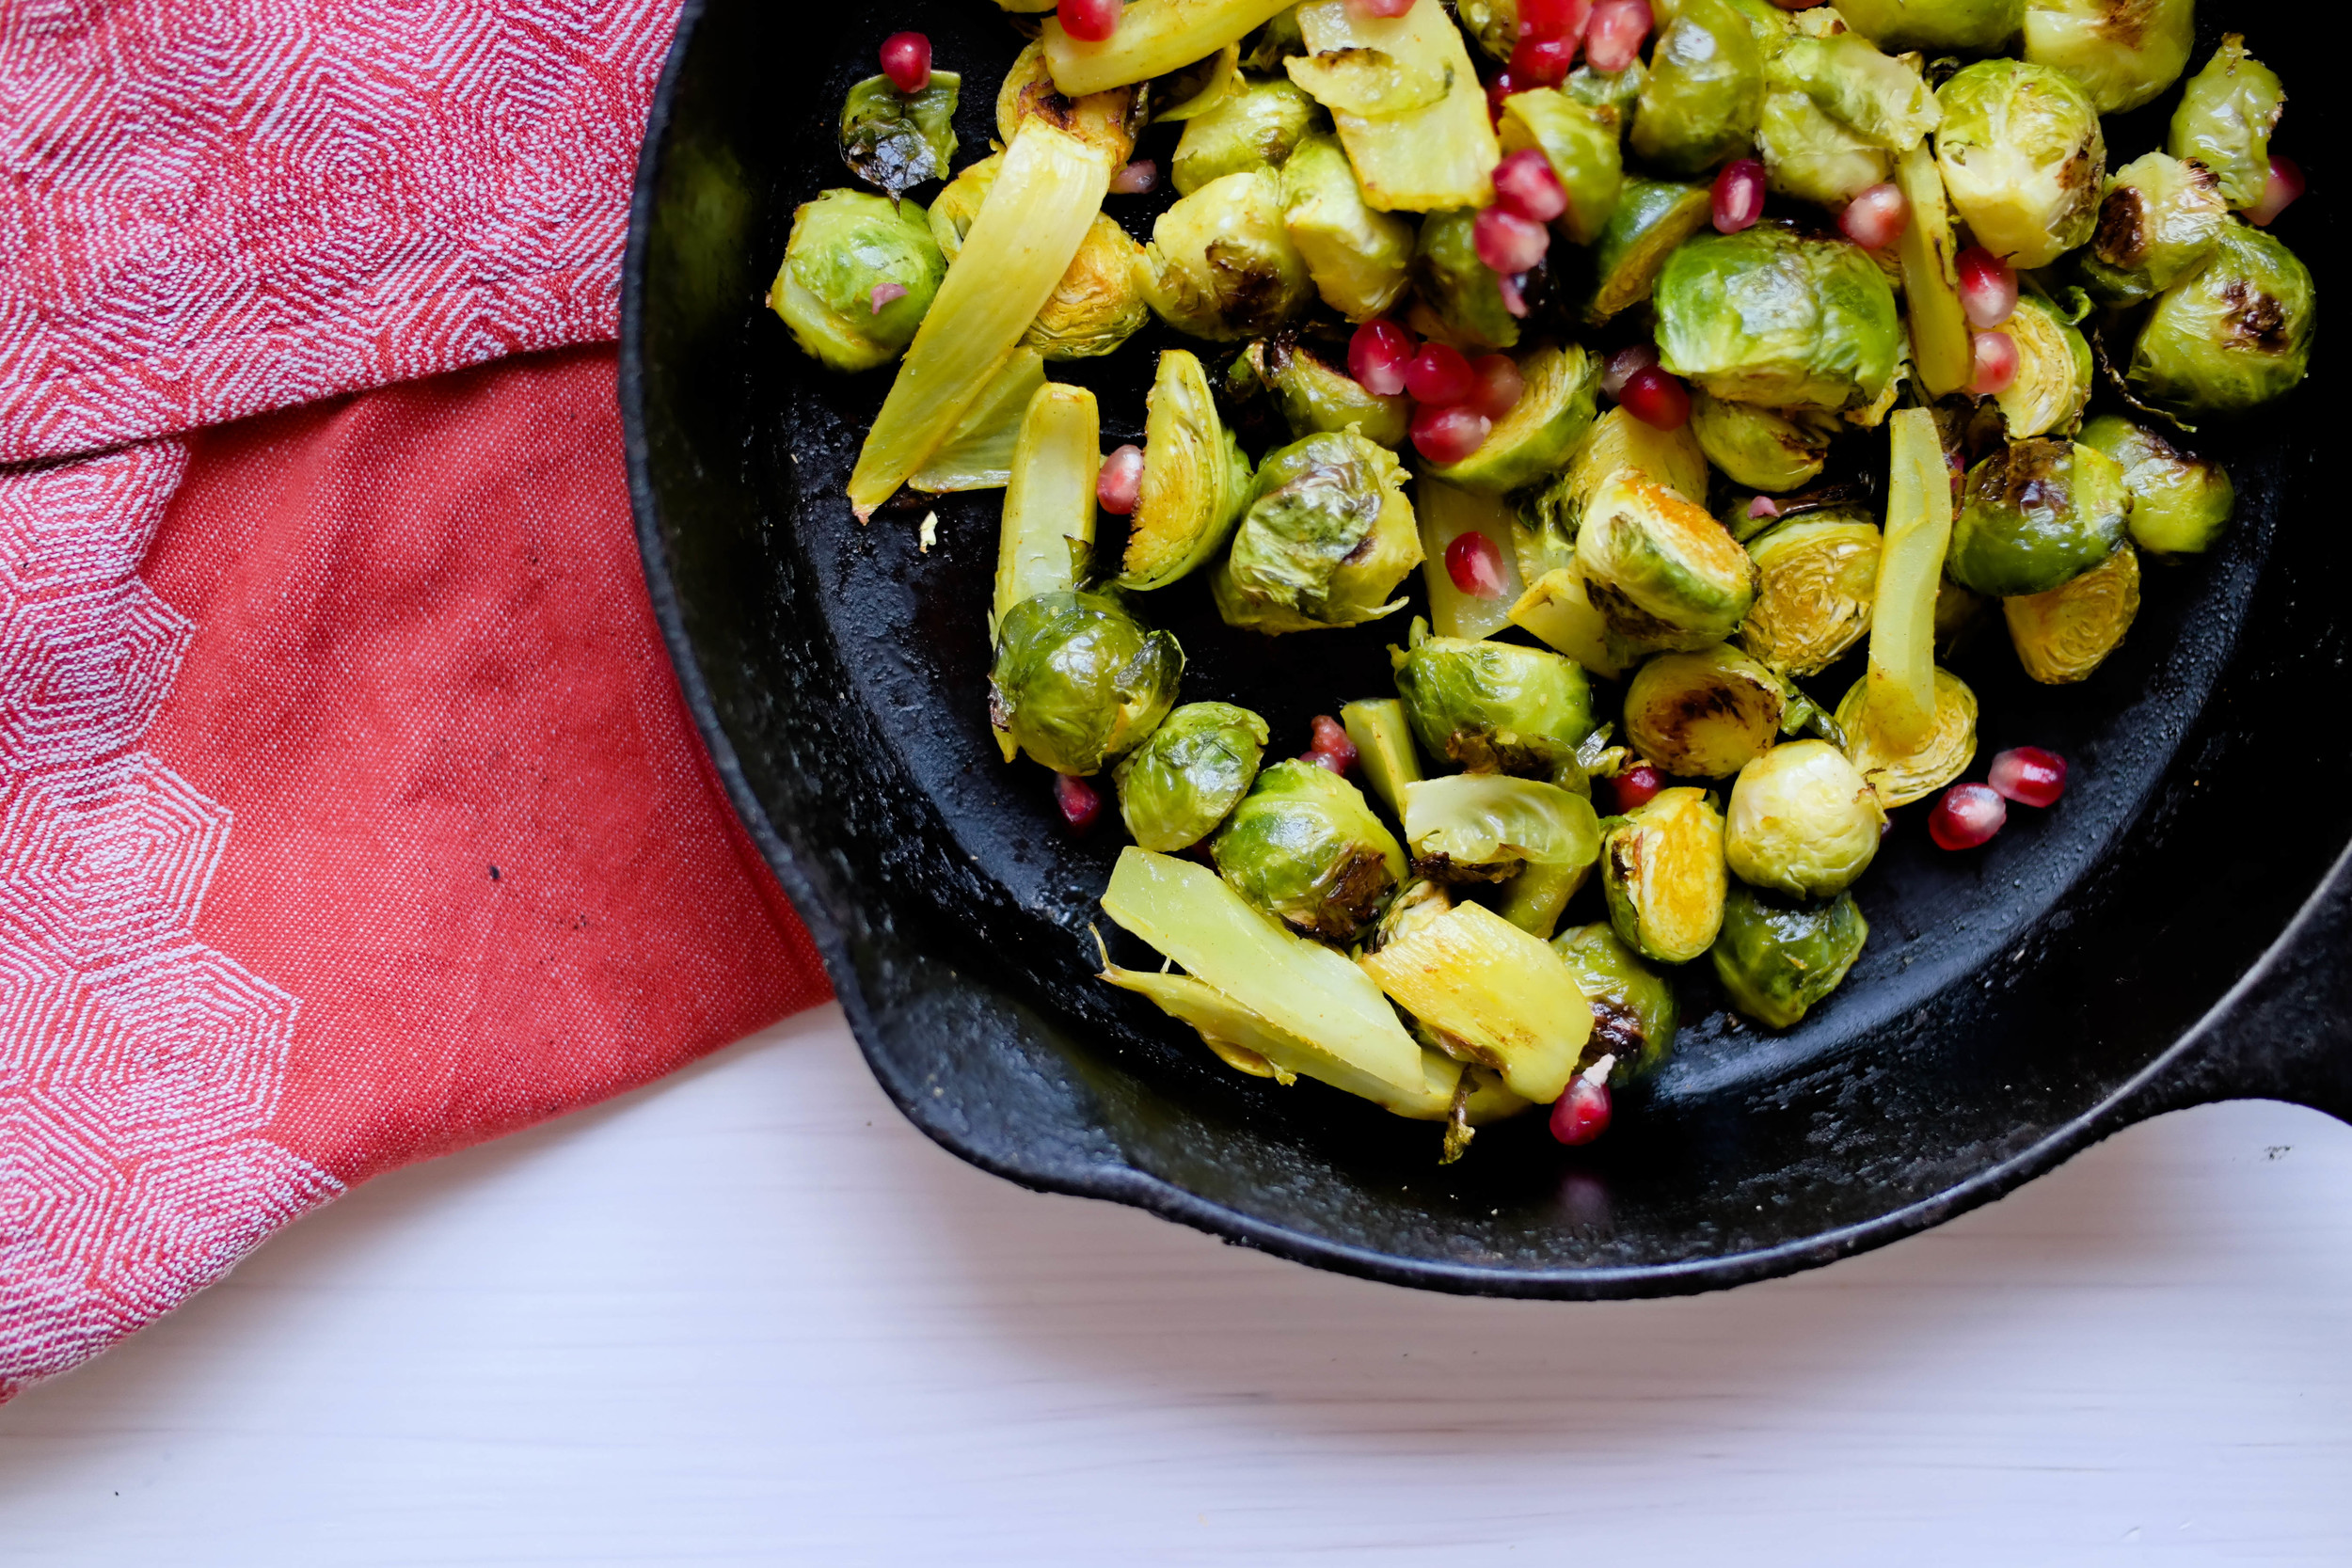 3-Thanksgiving-Ideas-Roasted-Brussel-Sprouts-with-fennel-and-pomegranate-seeds | www.8thandlake.com.jpg